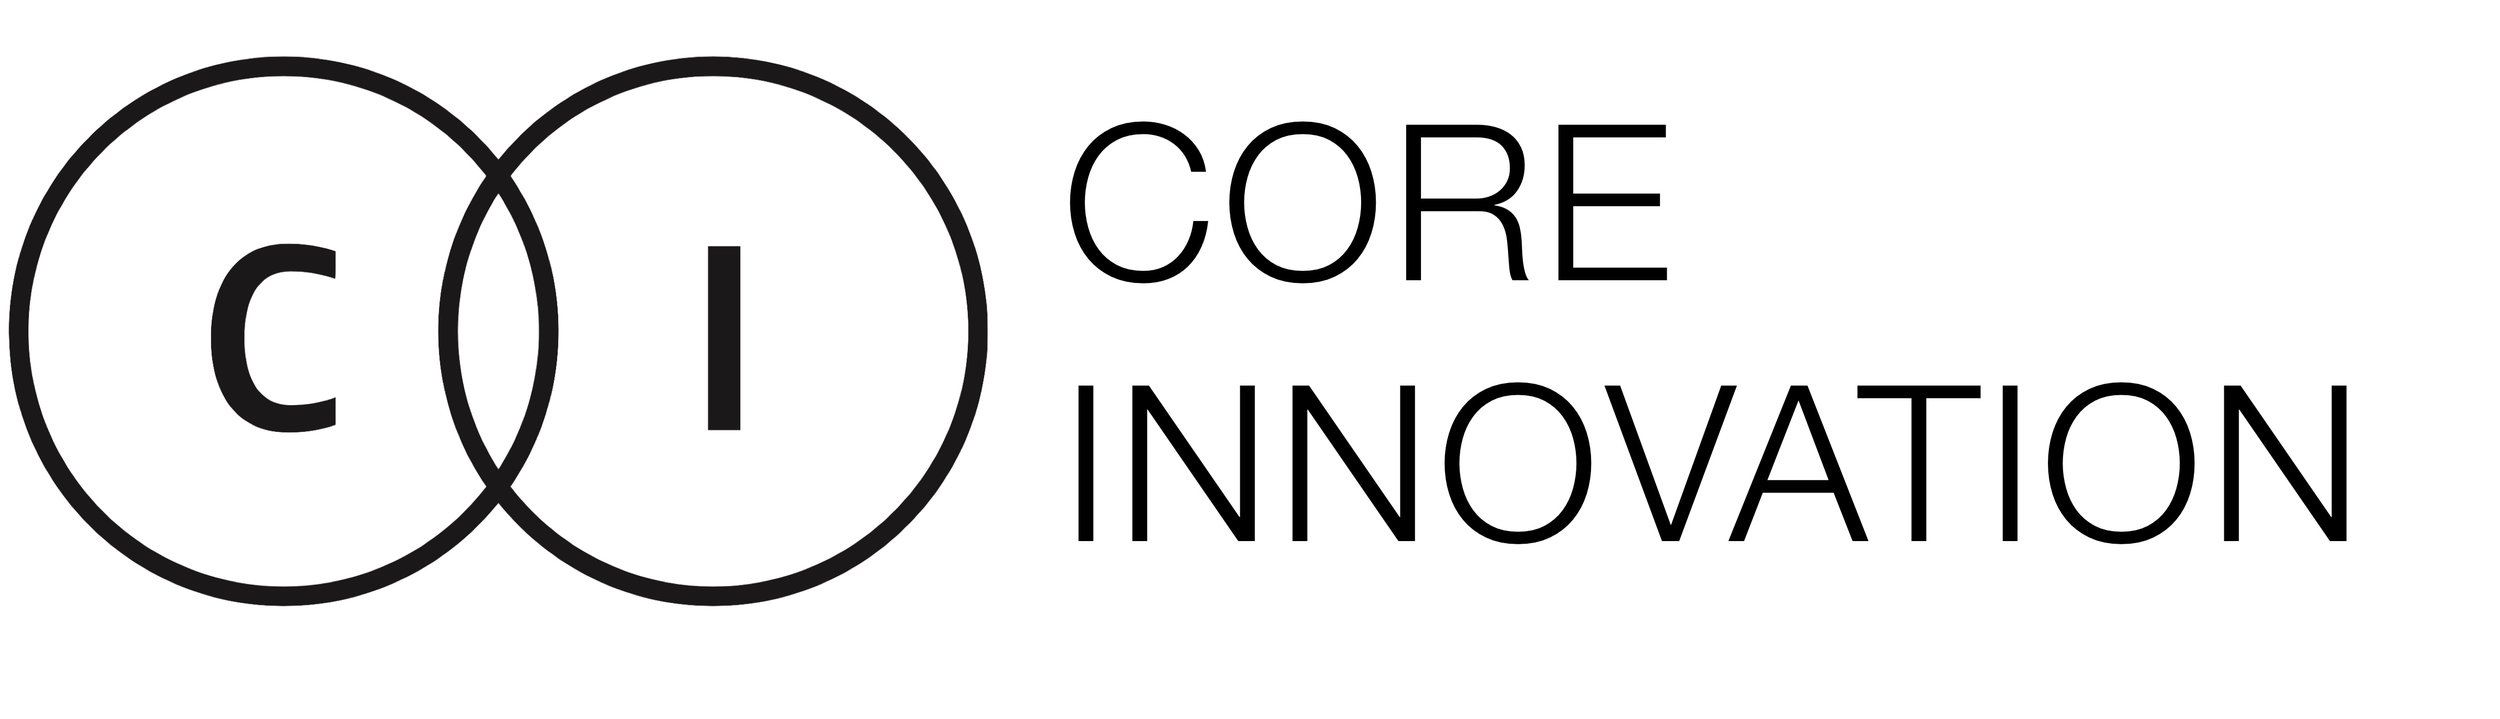 Core Innovation - Core Innovation generates, secures and shares innovation through innovative concepts, business models and technology. Conducts innovation management relying on custom tailored communication actions